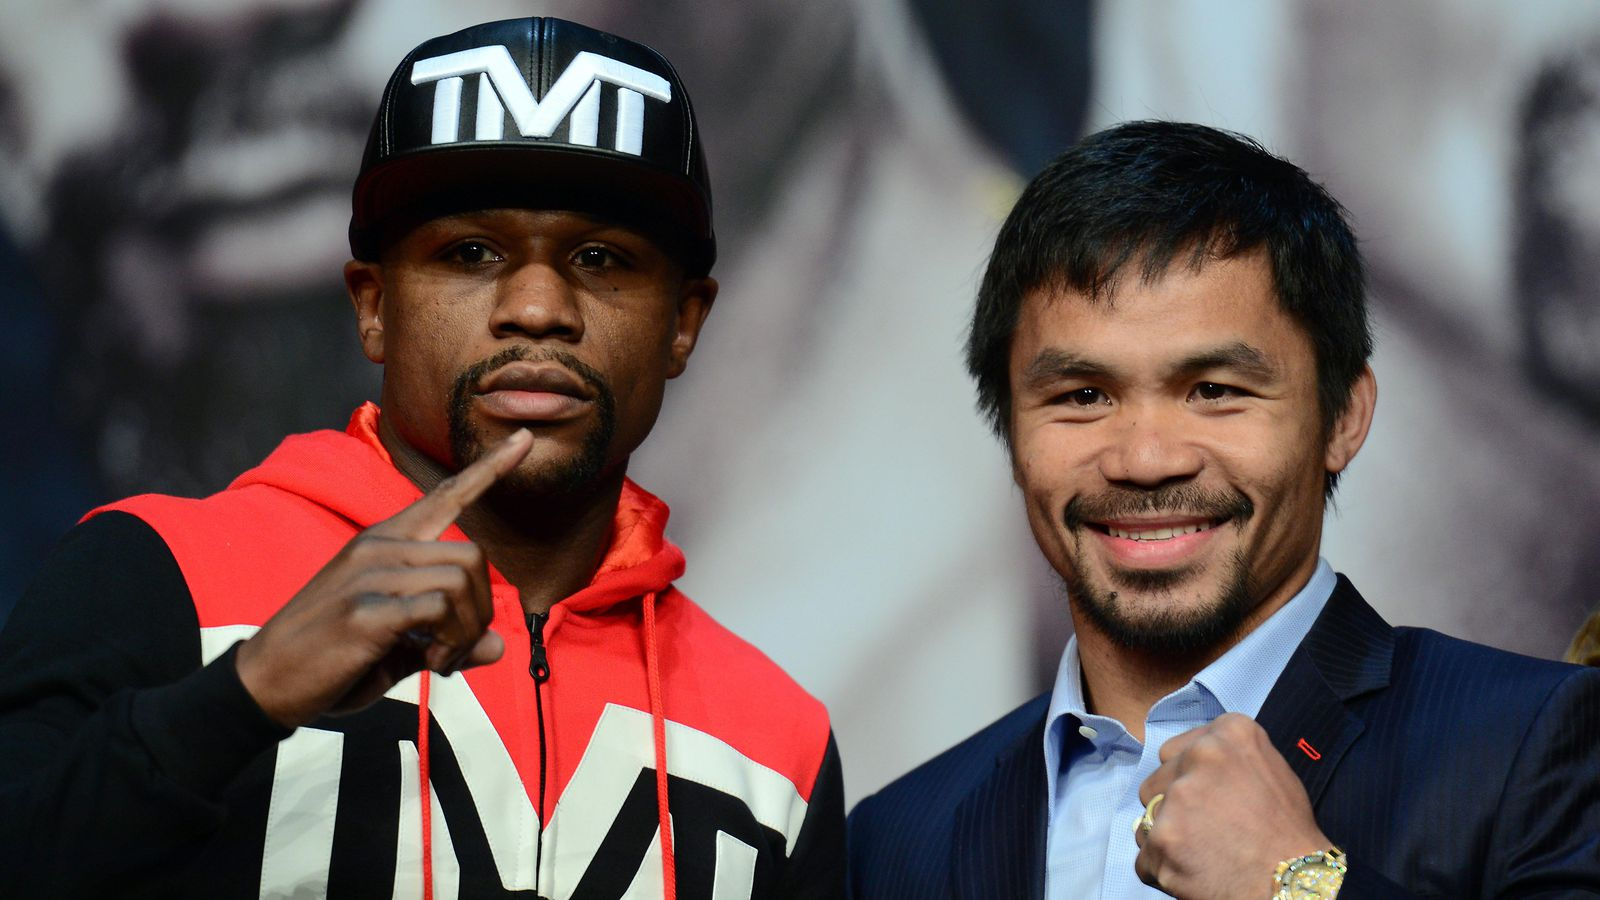 Mayweather vs Pacquiao: Want $50 off the PPV price? Buy Tecate ...